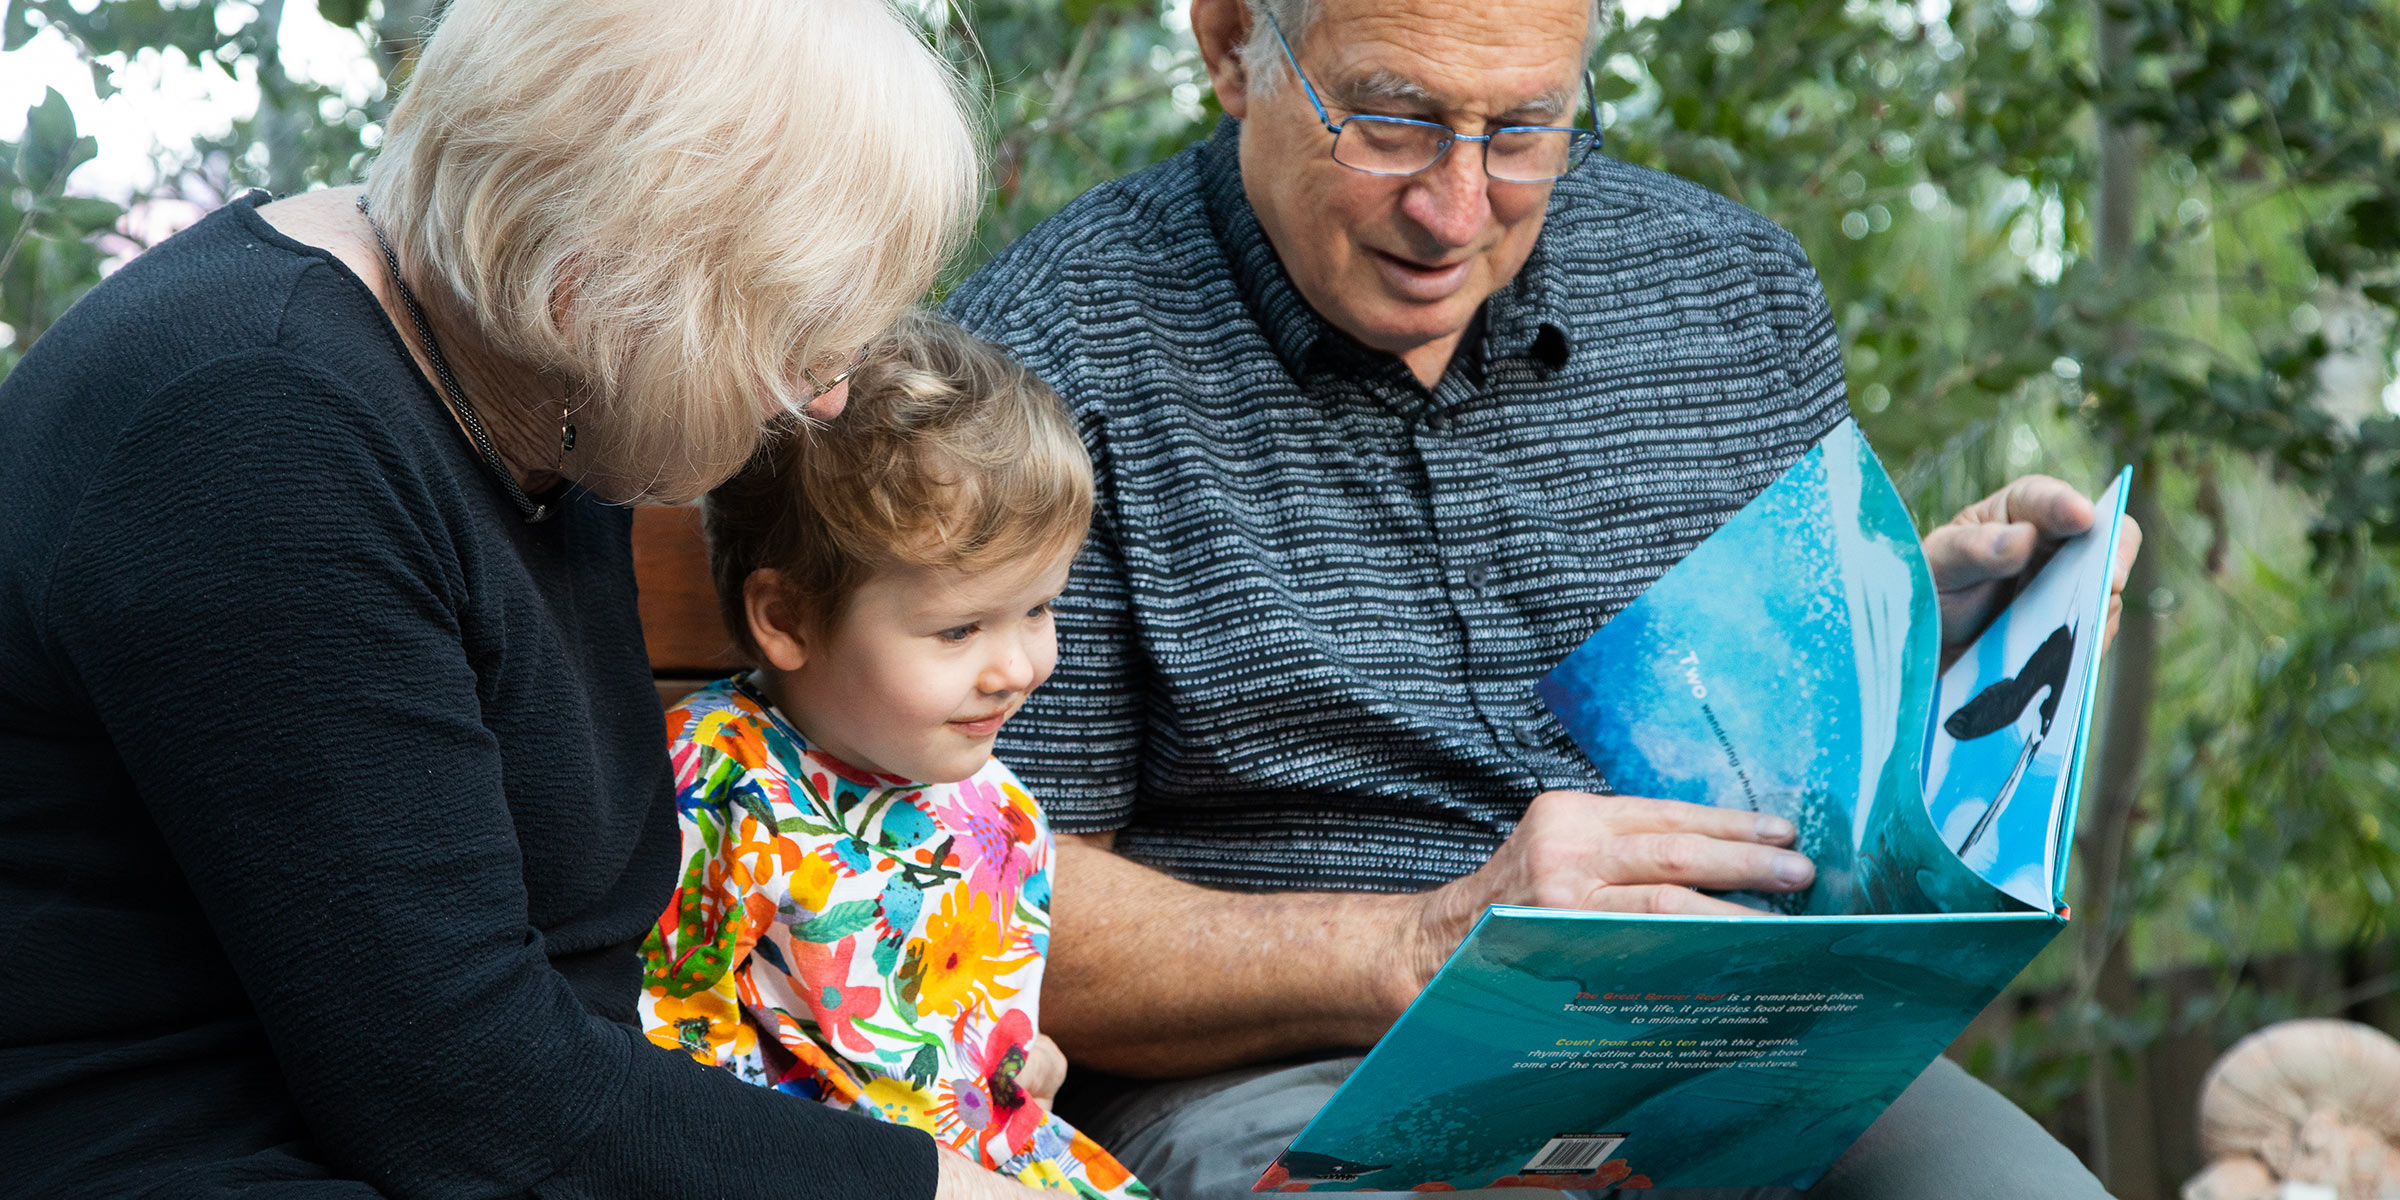 Grandparents reading to young child outside